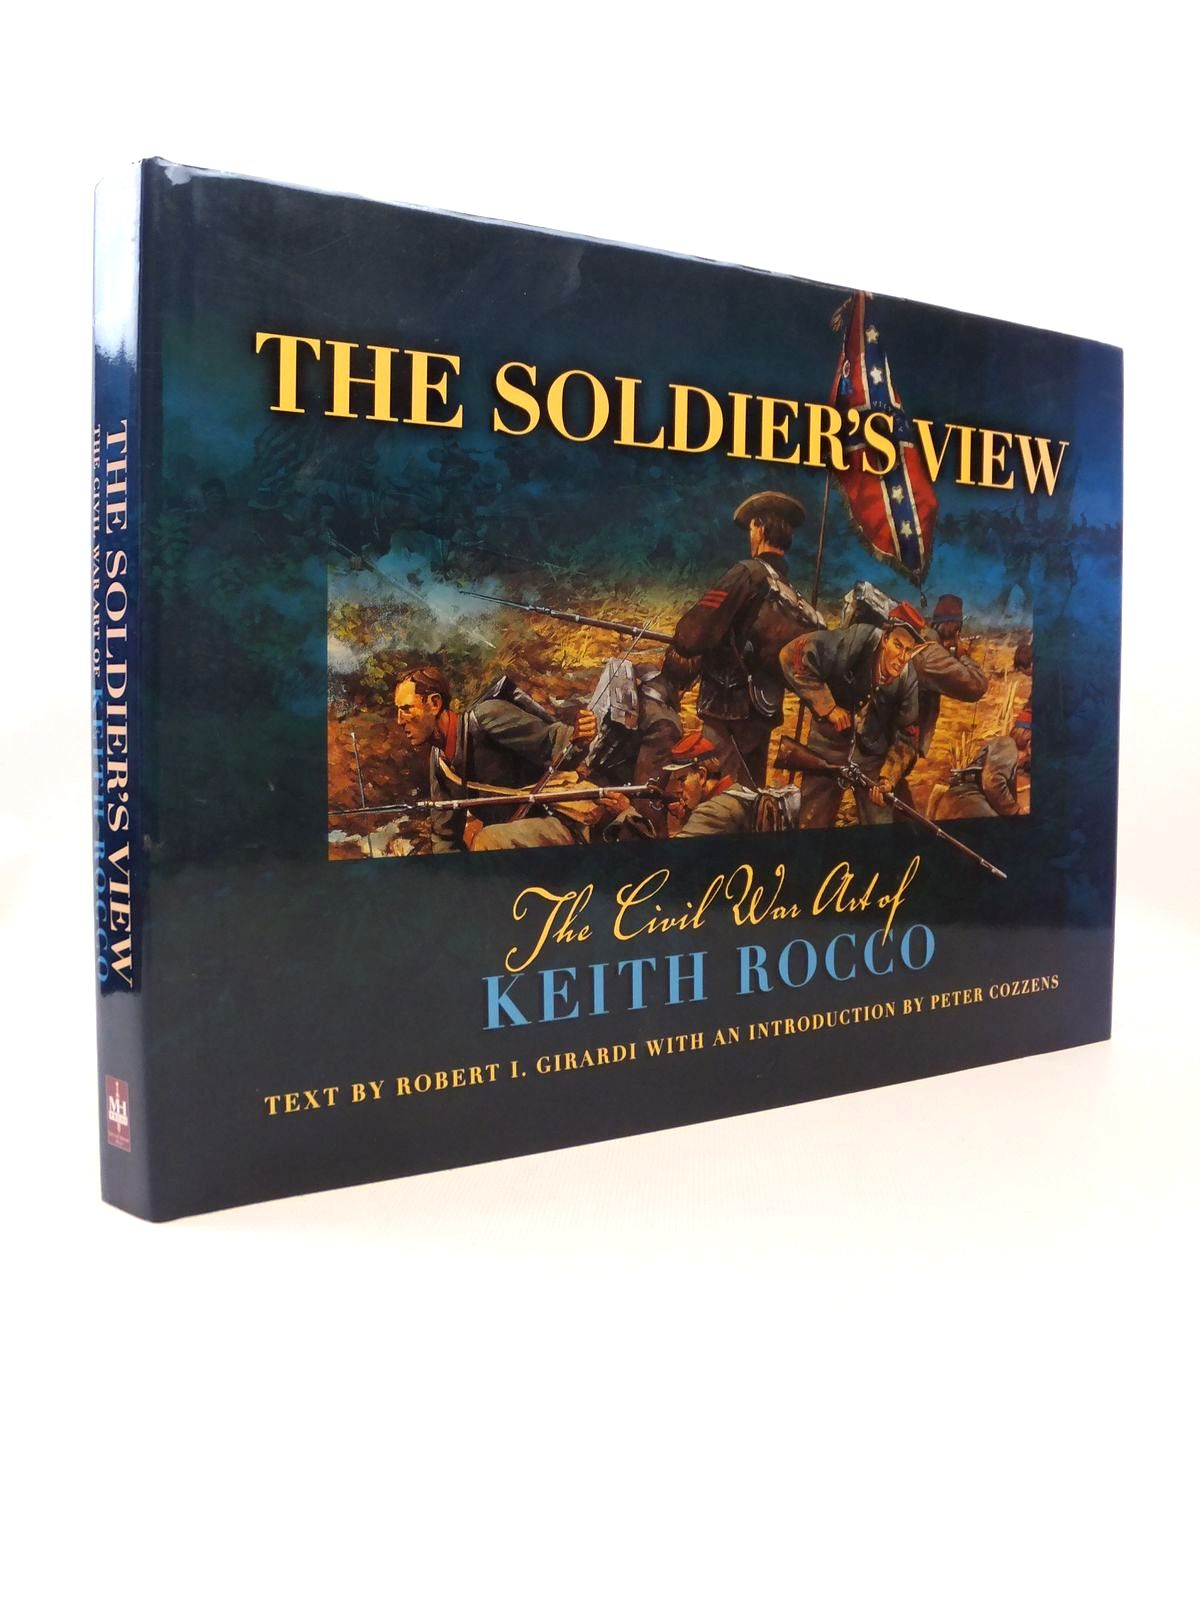 Photo of THE SOLDIER'S VIEW: THE CIVIL WAR ART OF KEITH ROCCO written by Girardi, Robert I. illustrated by Rocco, Keith published by Military History Press (STOCK CODE: 1812583)  for sale by Stella & Rose's Books